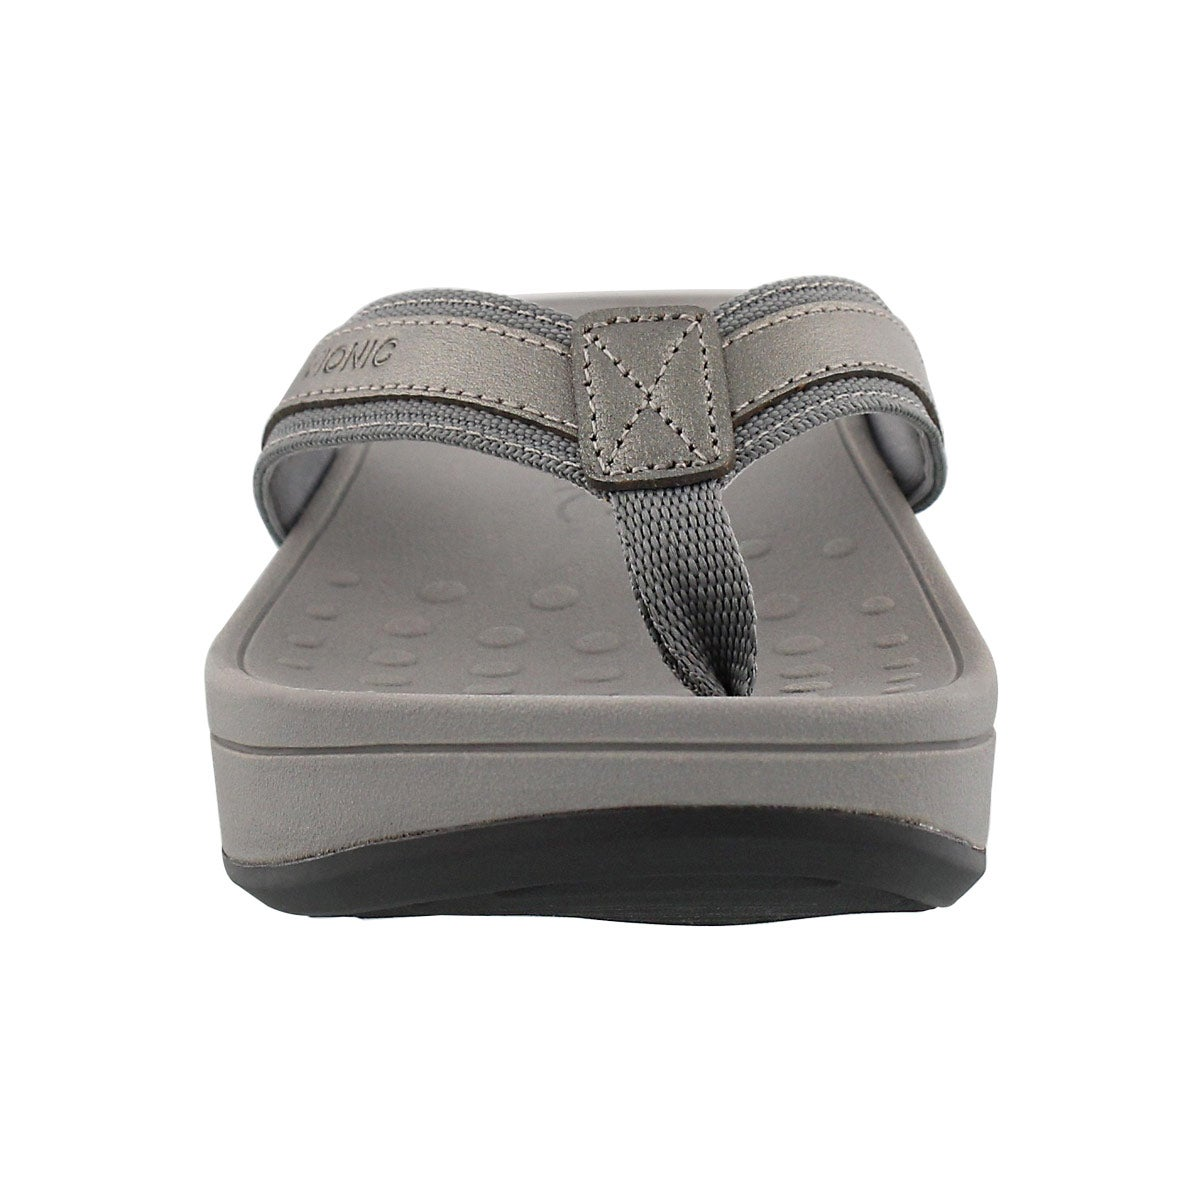 Lds High Tide pwtr arch support wdg sndl